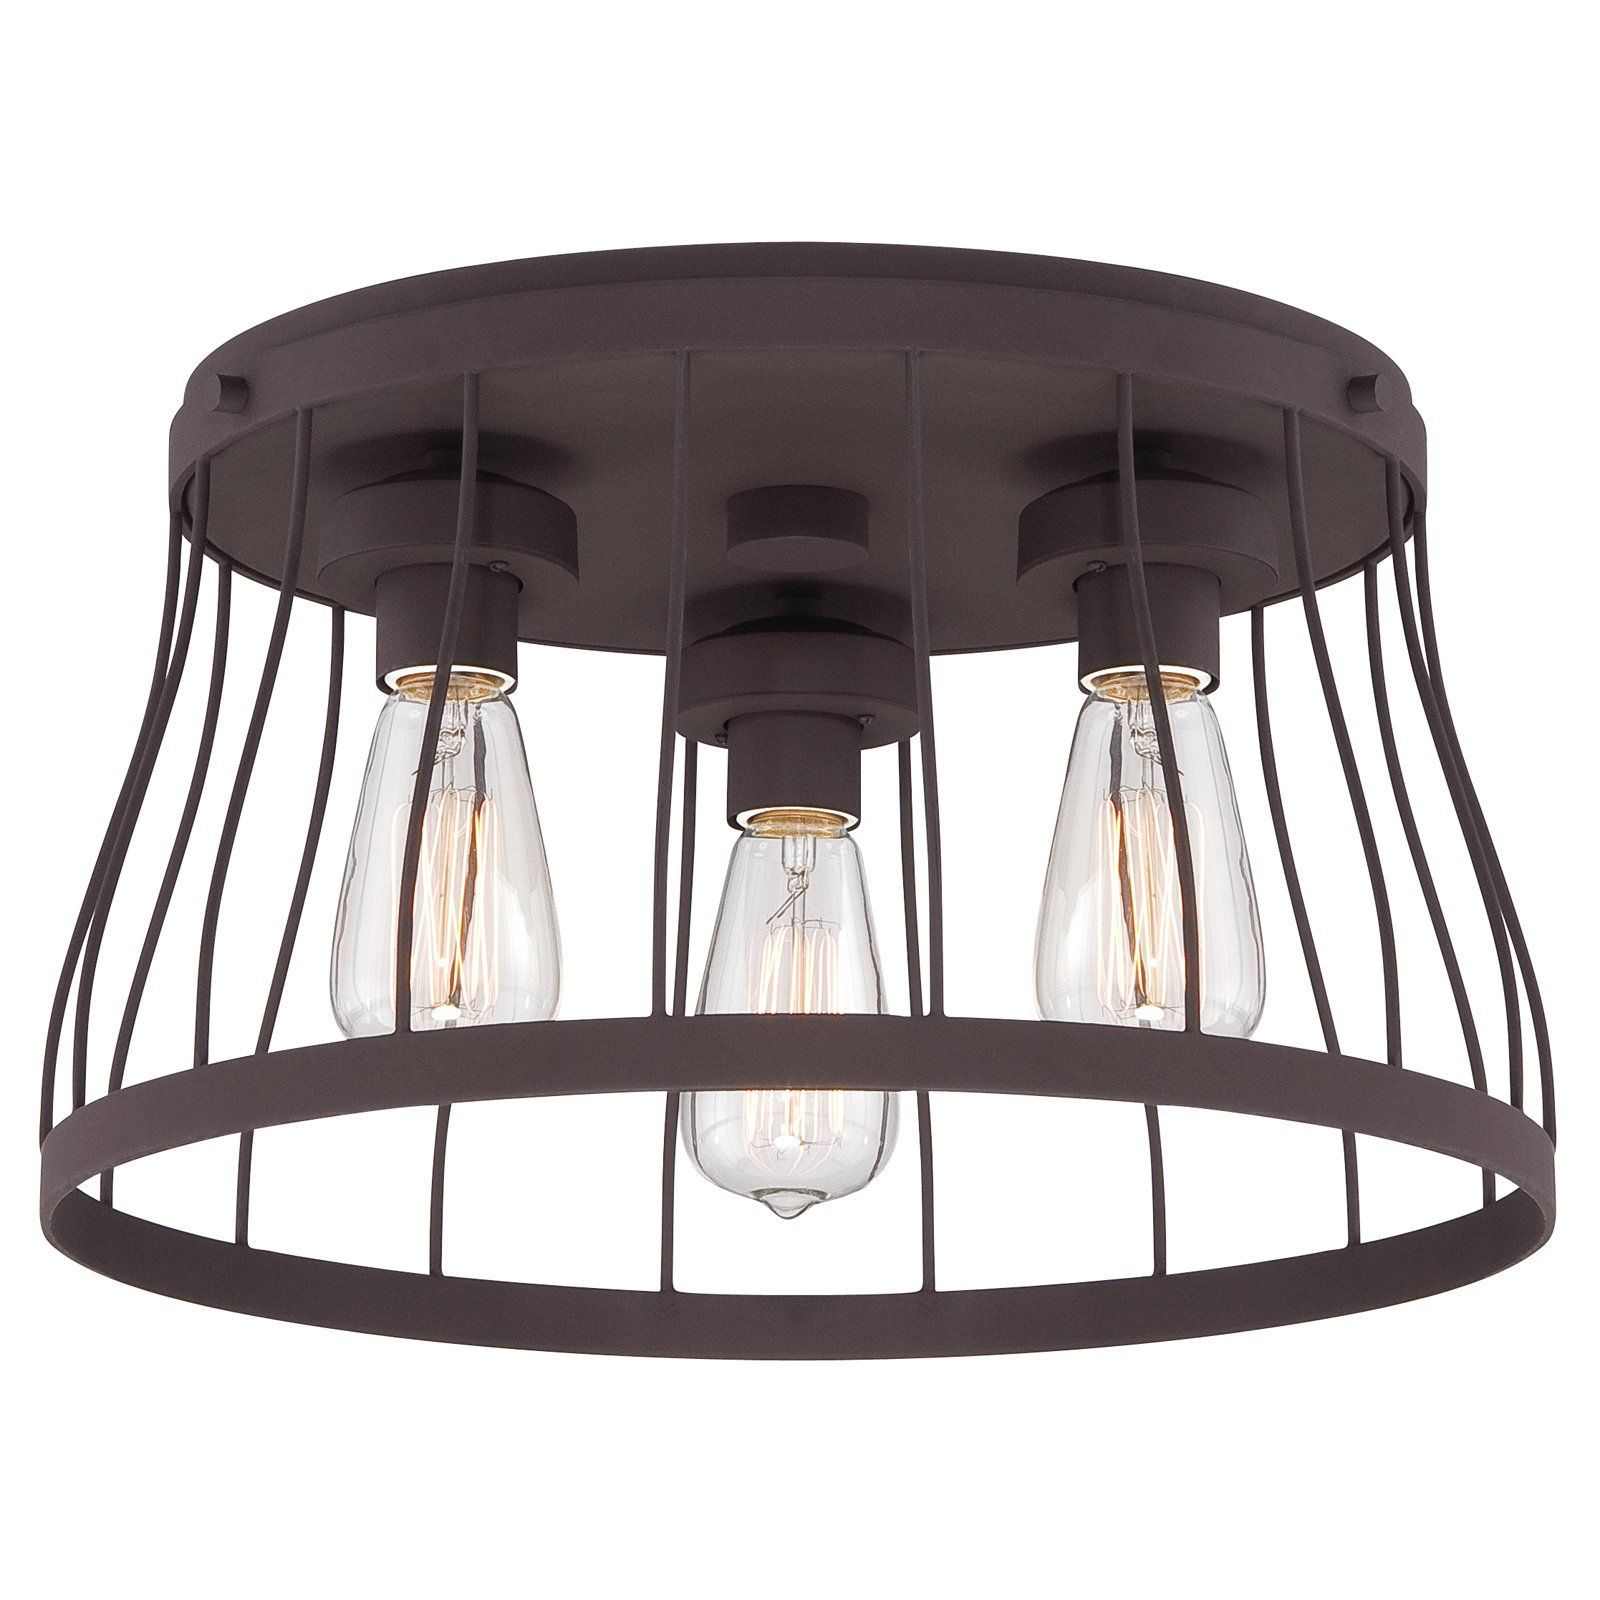 Designers Fountain Brooklyn 86821 Flush Mount Light from